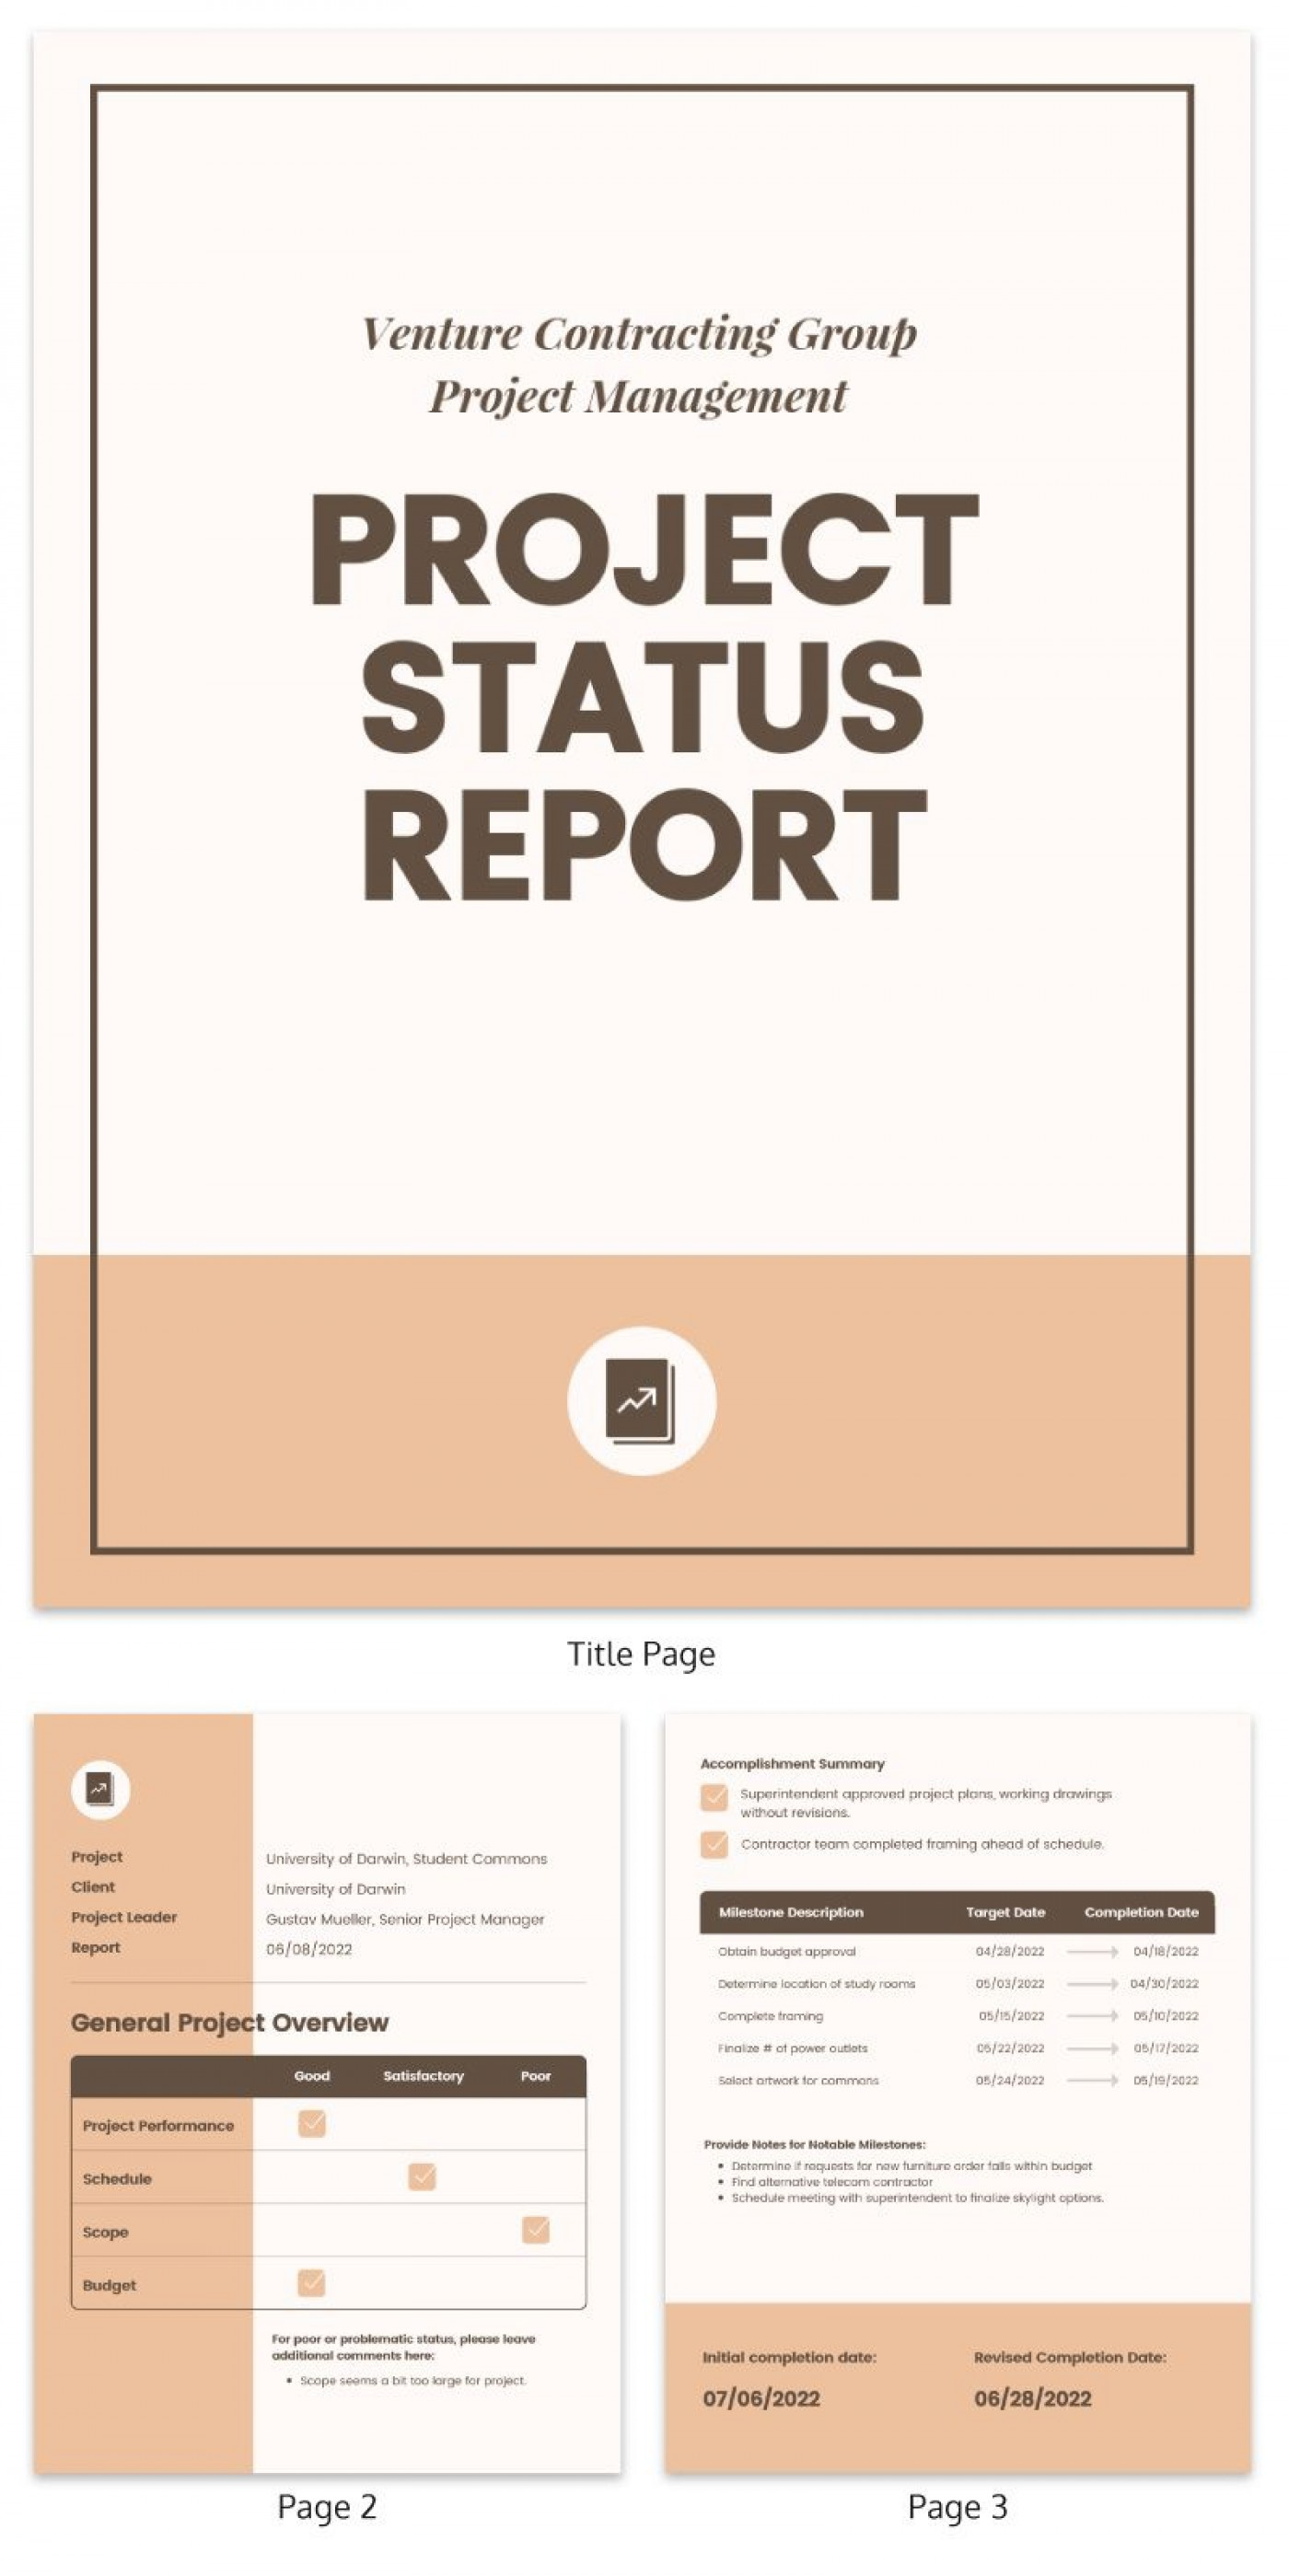 007 Top Project Management Report Template Free High Resolution  Word Weekly Statu Excel1400